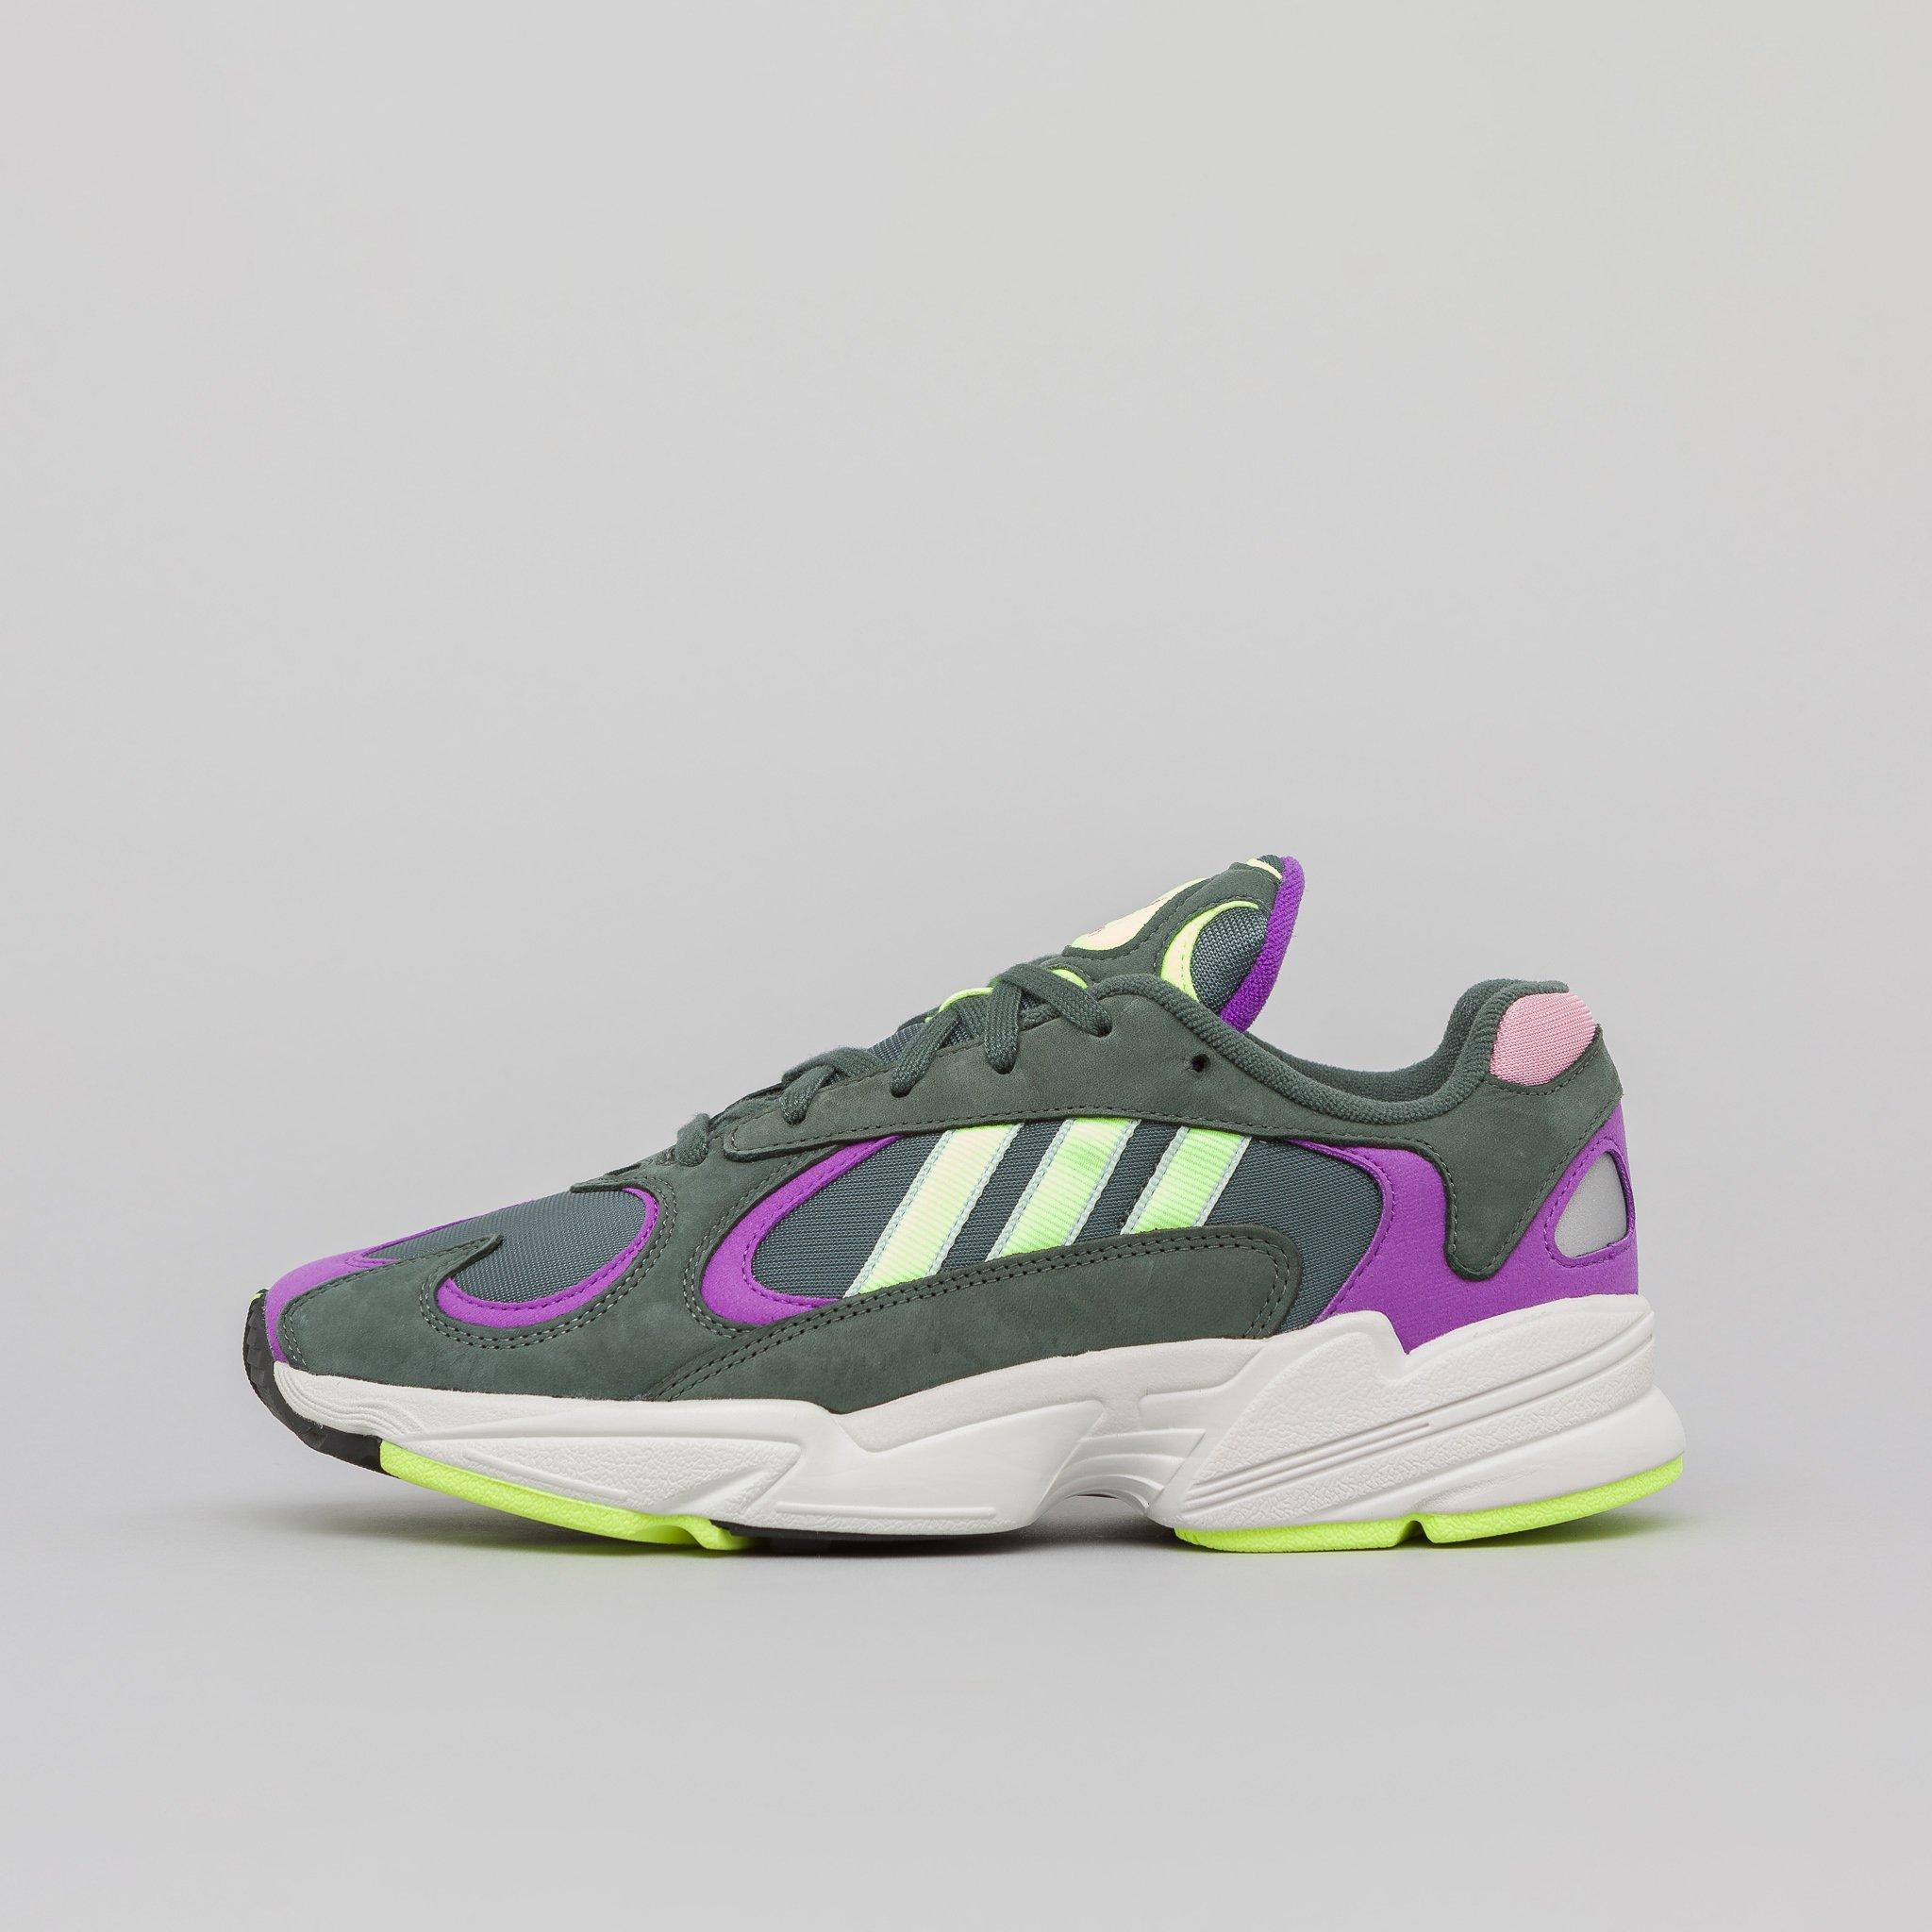 check out 237c9 34e51 adidas. Mens Yung-1 In Legend Ivy